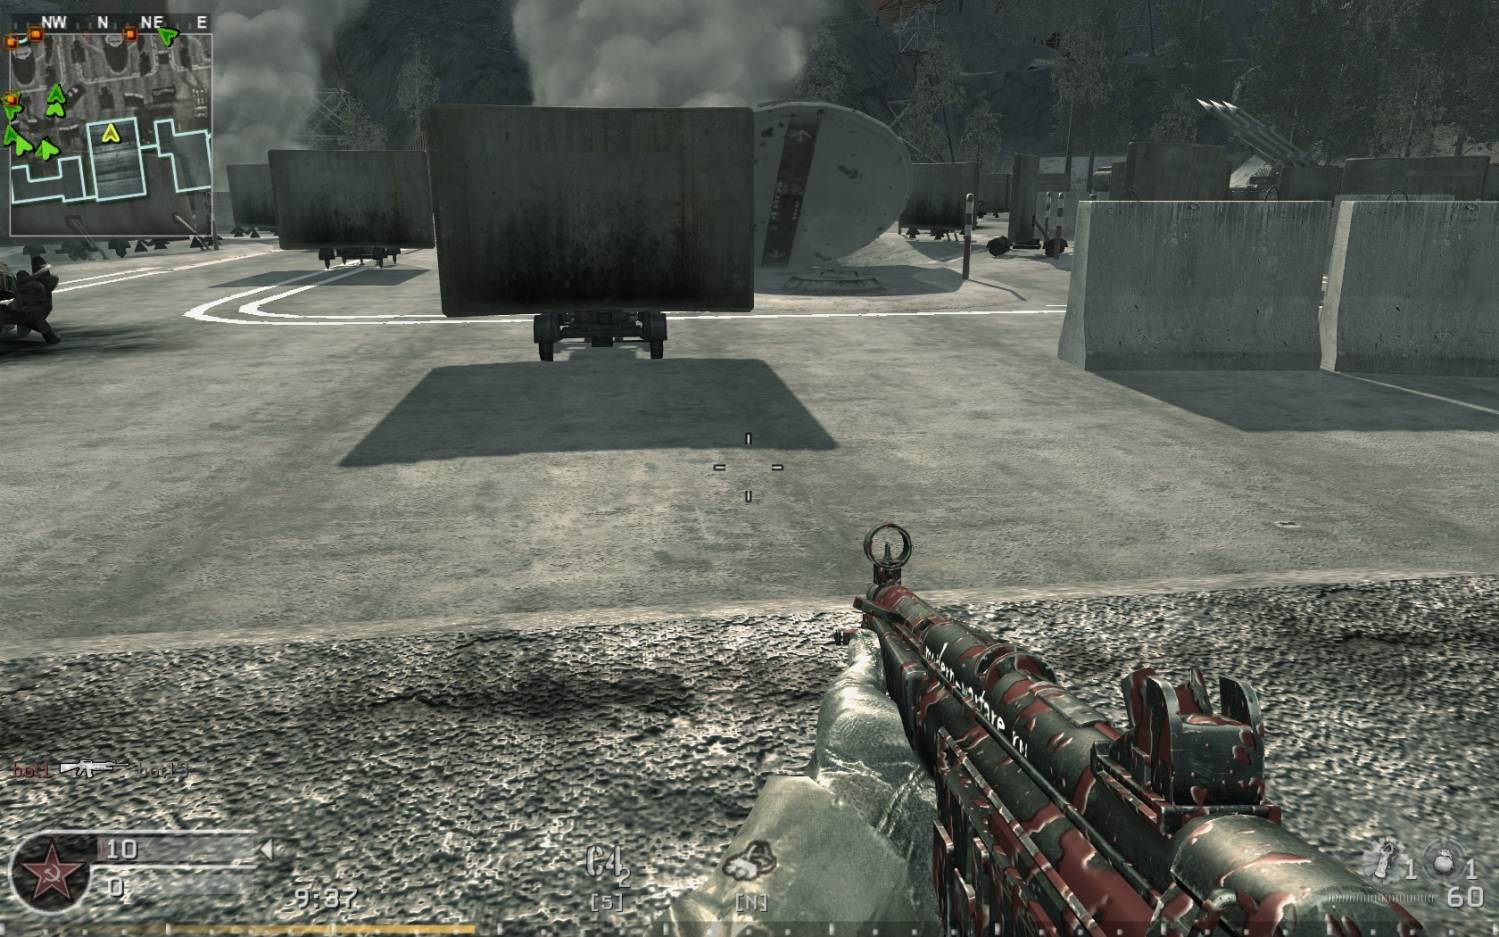 Looking for a copy of call of duty 4: modern warfare?